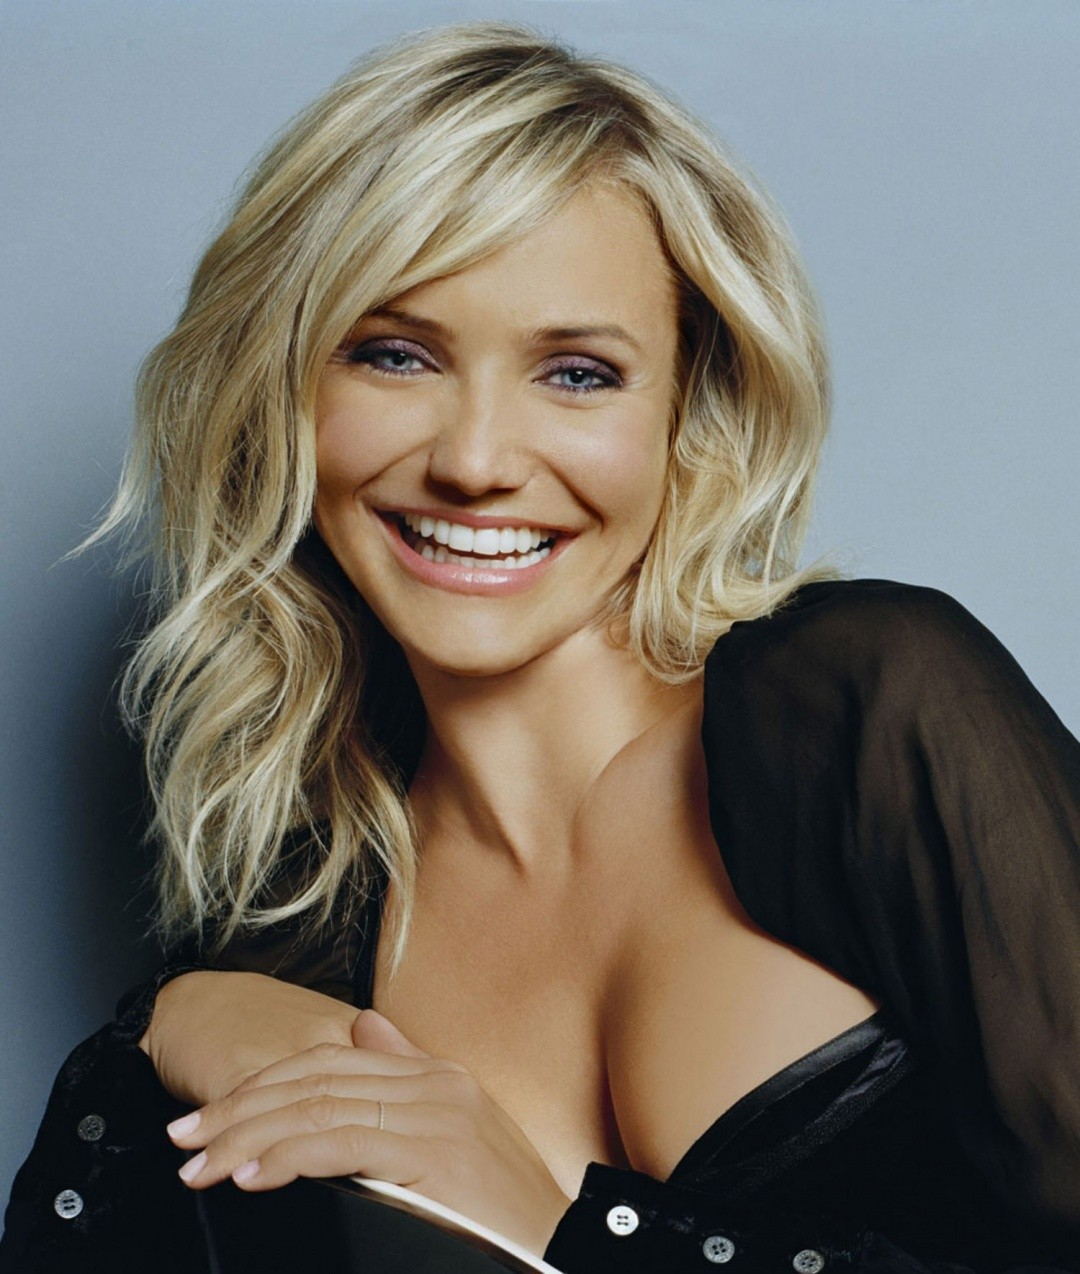 Cameron Diaz 10 Celebrities with the Extremely Gross Hygiene Practices